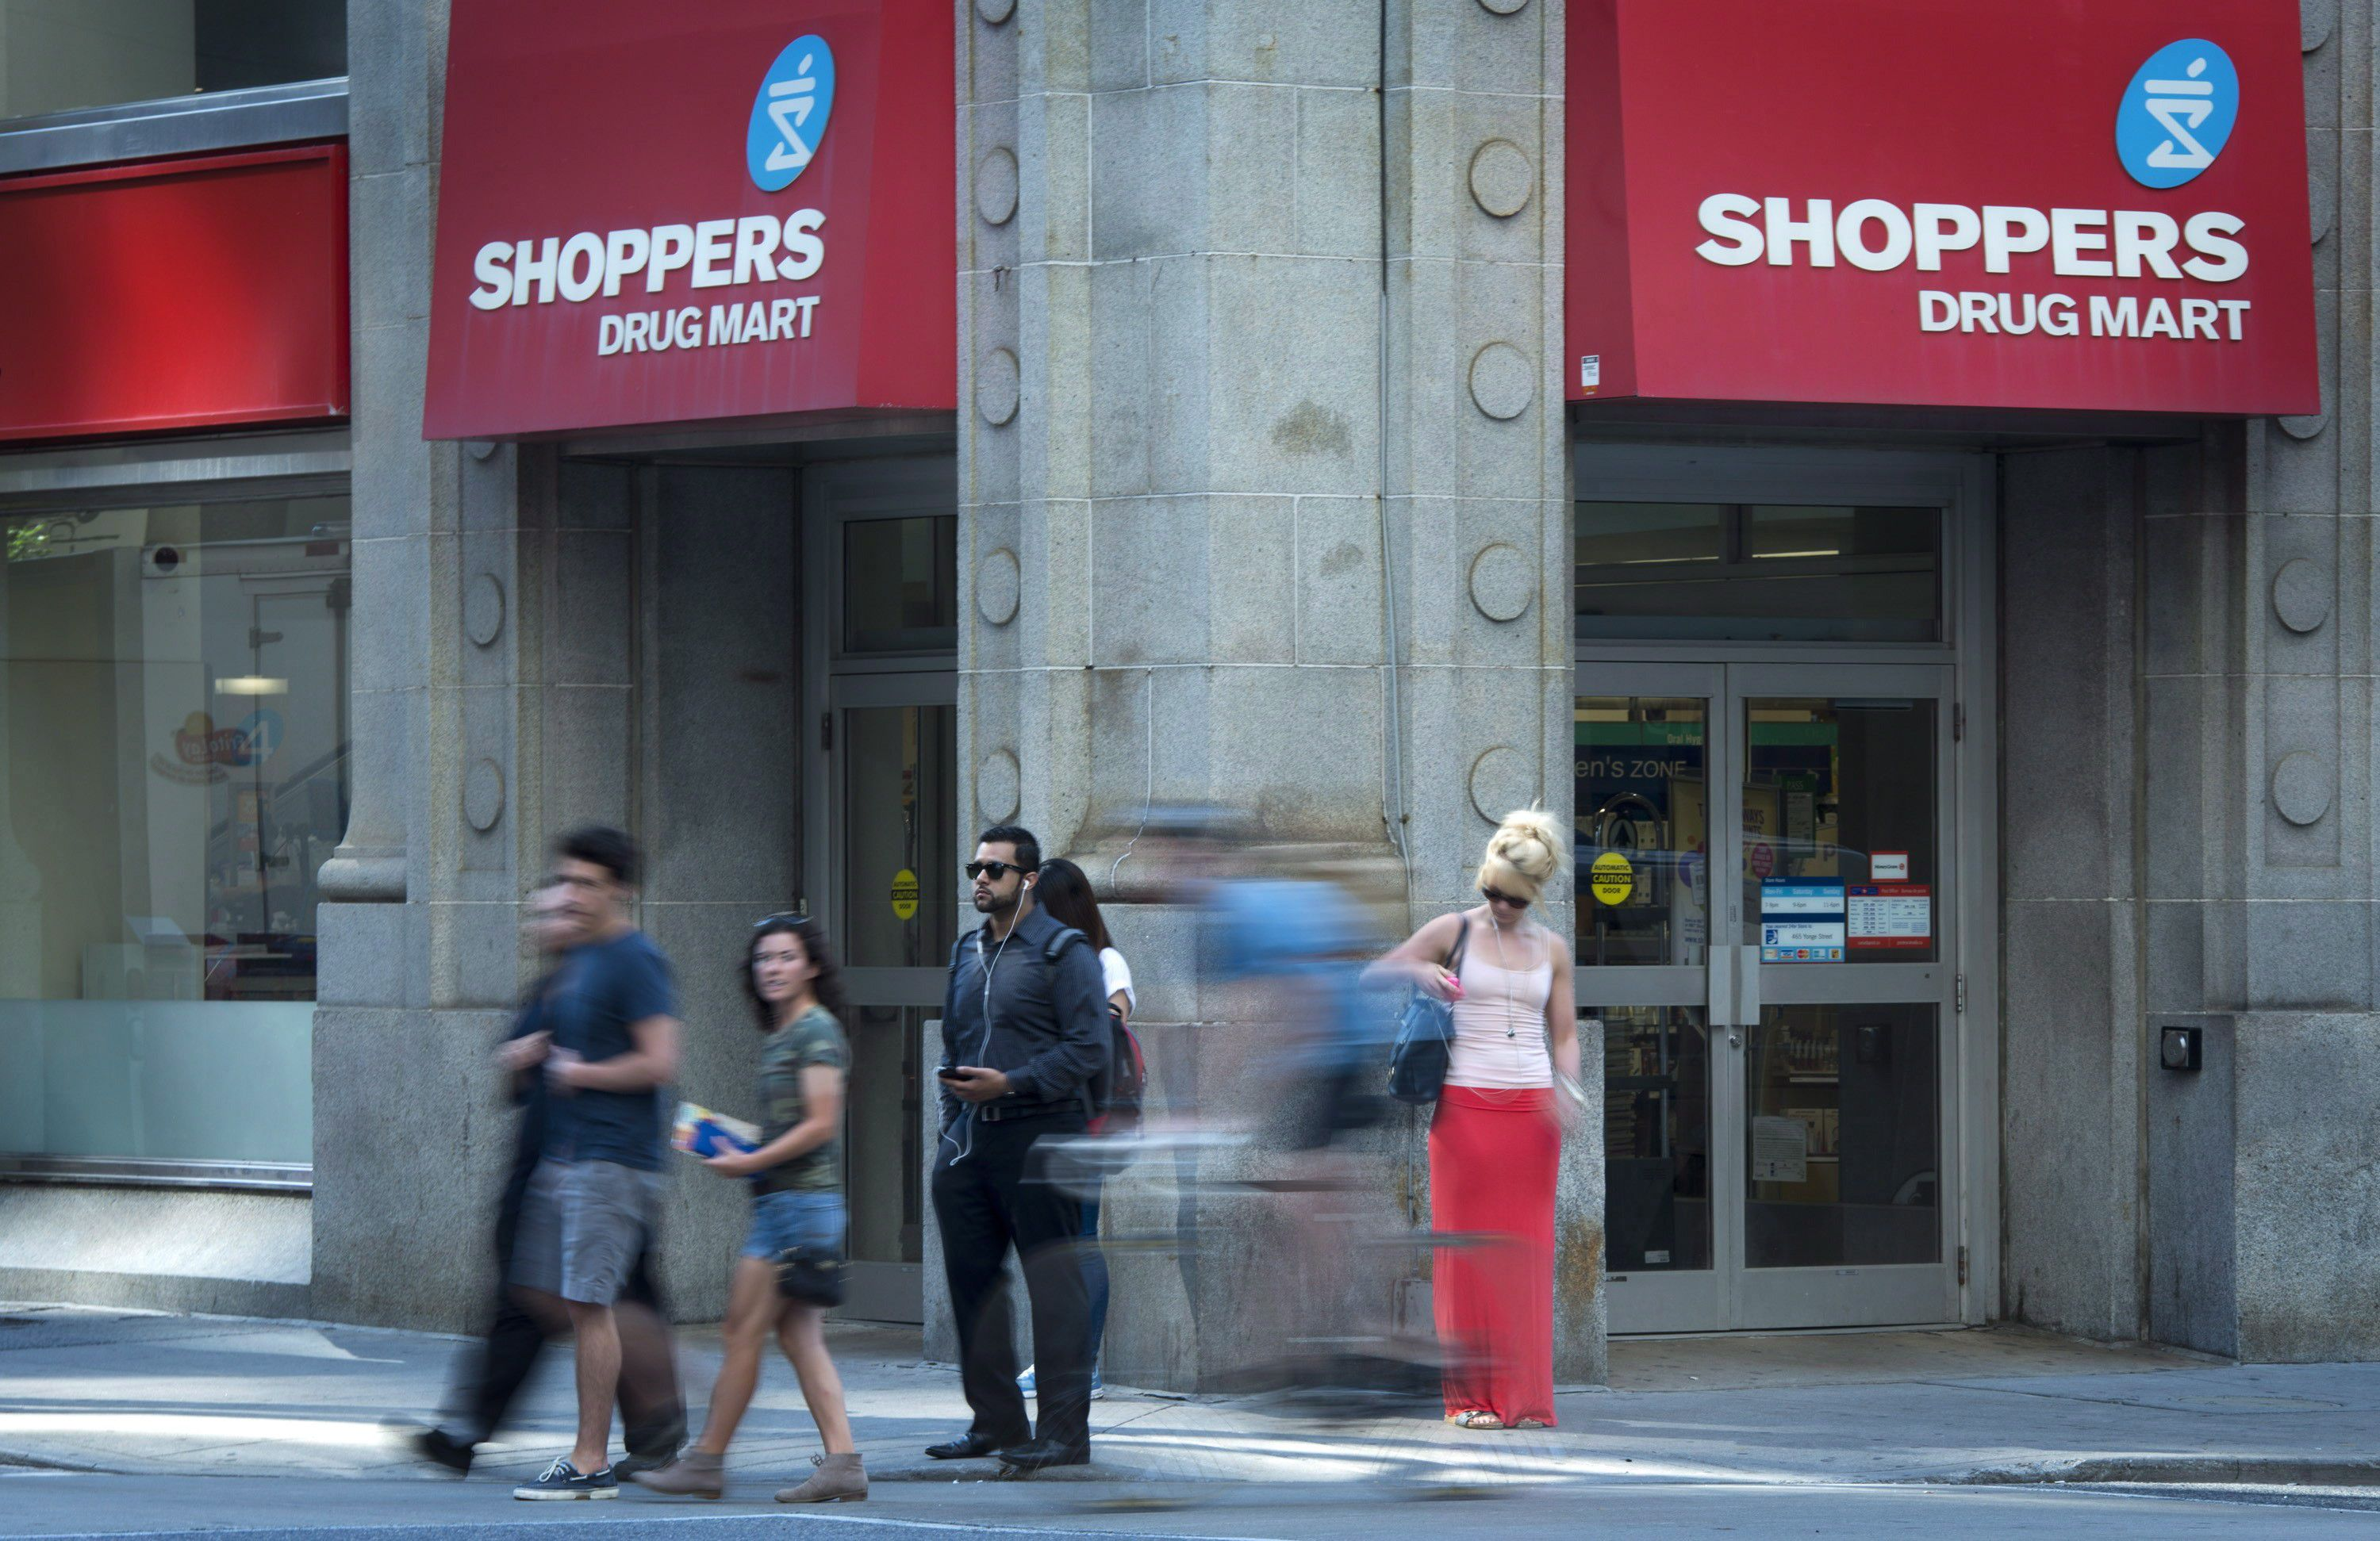 Shoppers Drug Mart to use blockchain technology to track medical cannabis quality